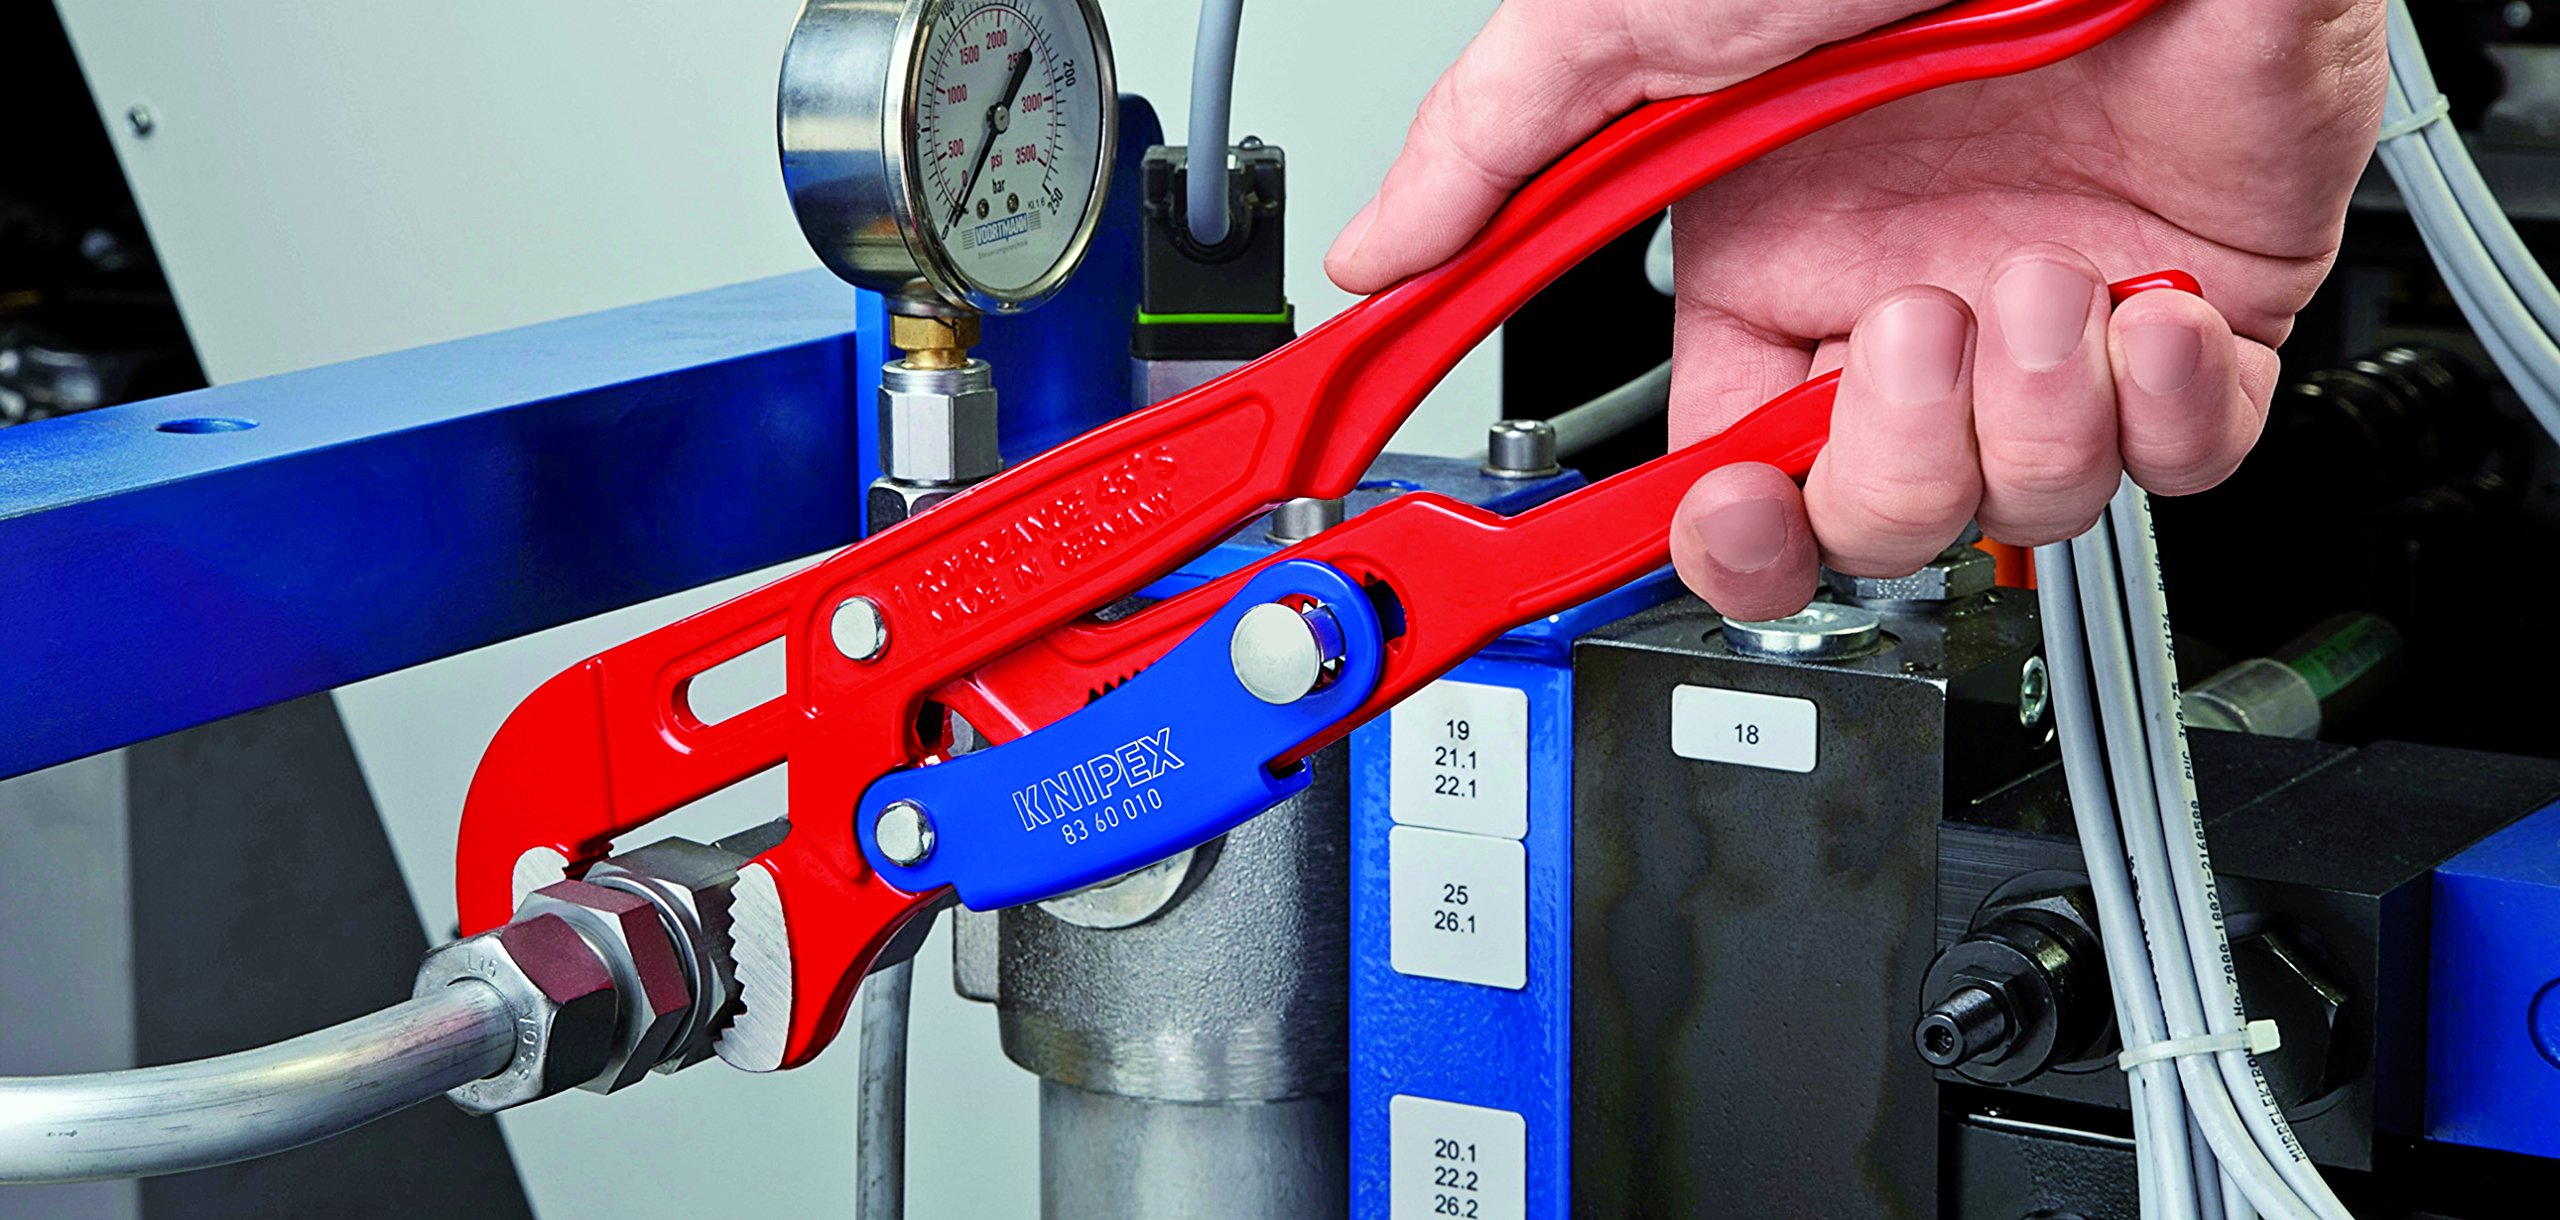 Knipex Tools 83 60 015 Swedish Pipe Wrenches by KNIPEX Tools